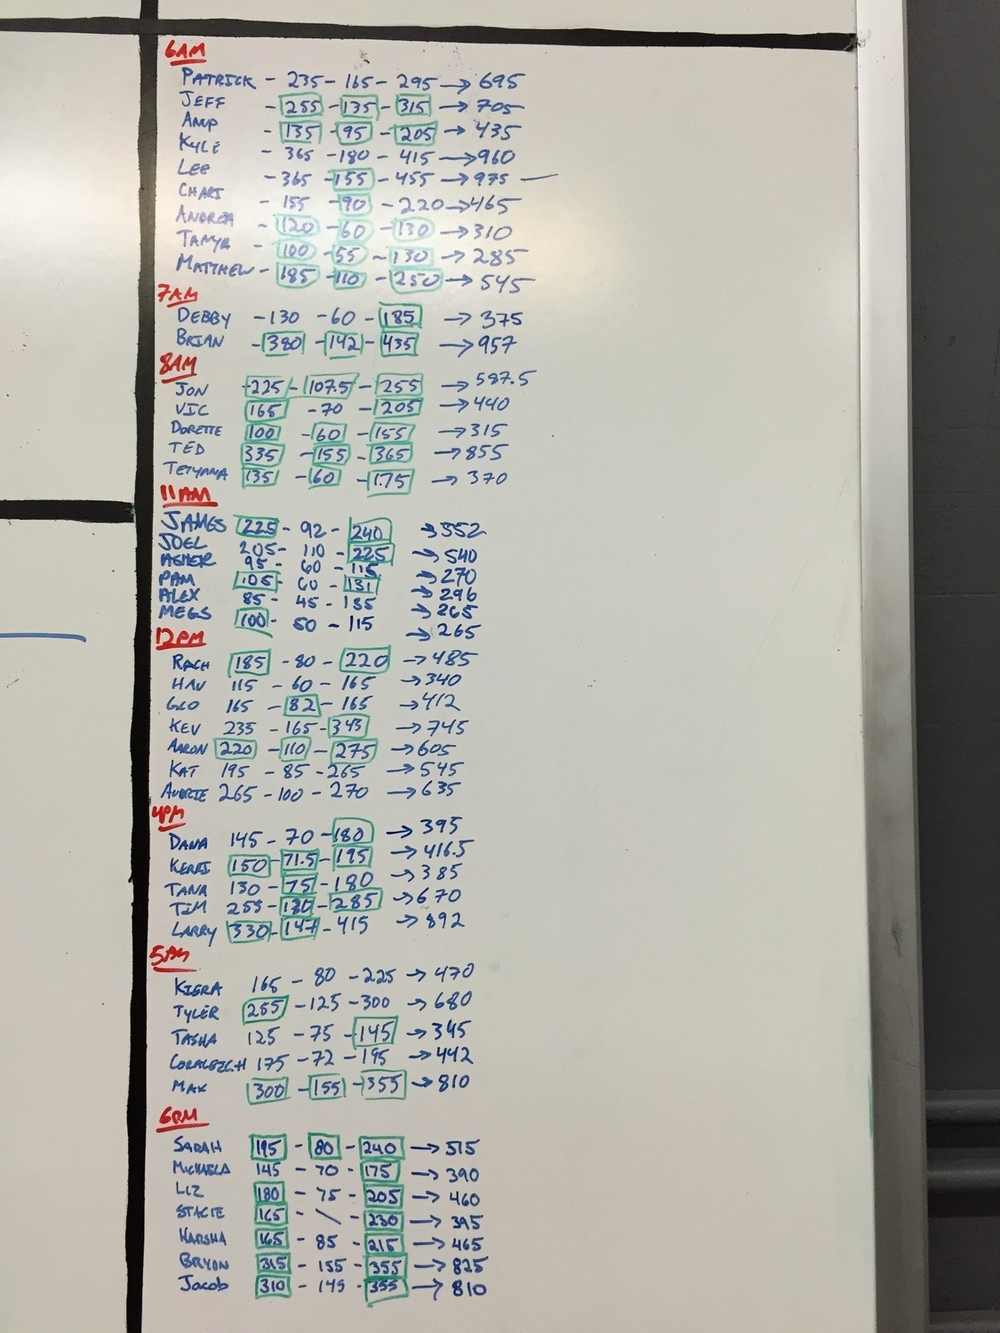 CrossFit Total Results Oct 14